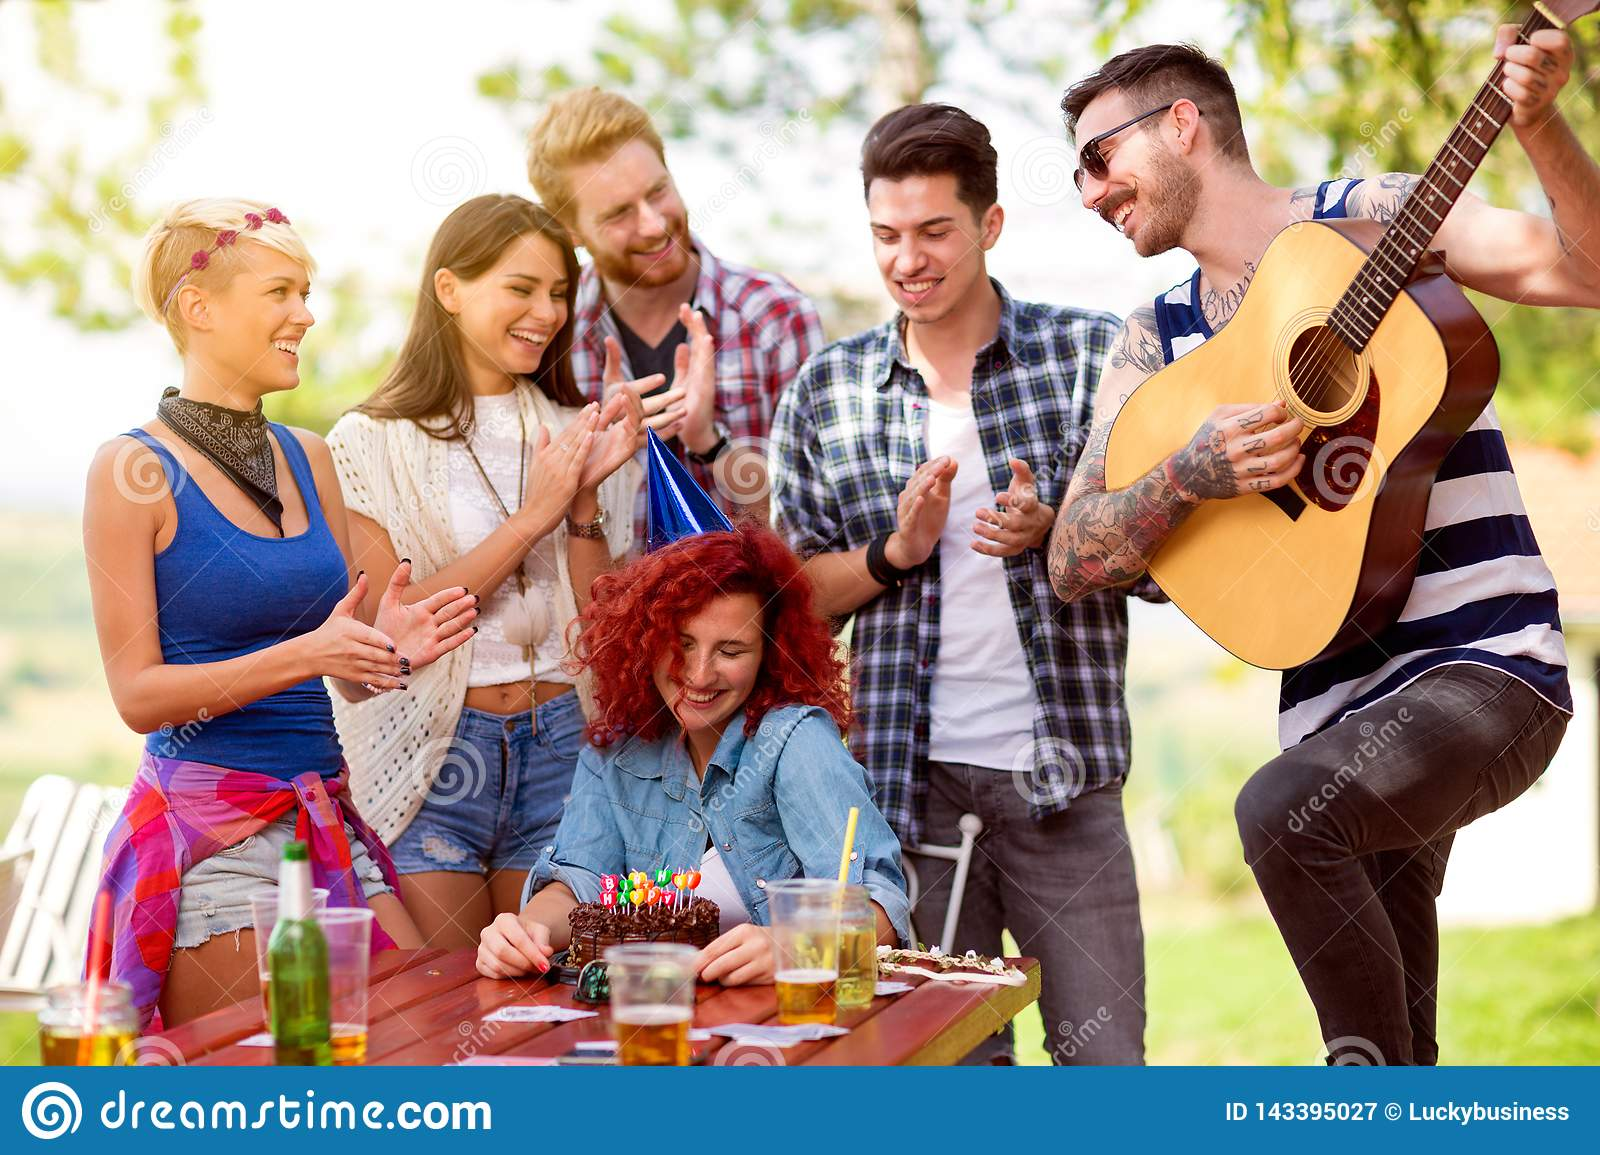 Shy birthday girl with friends who applaud and plays birthday song at guitar